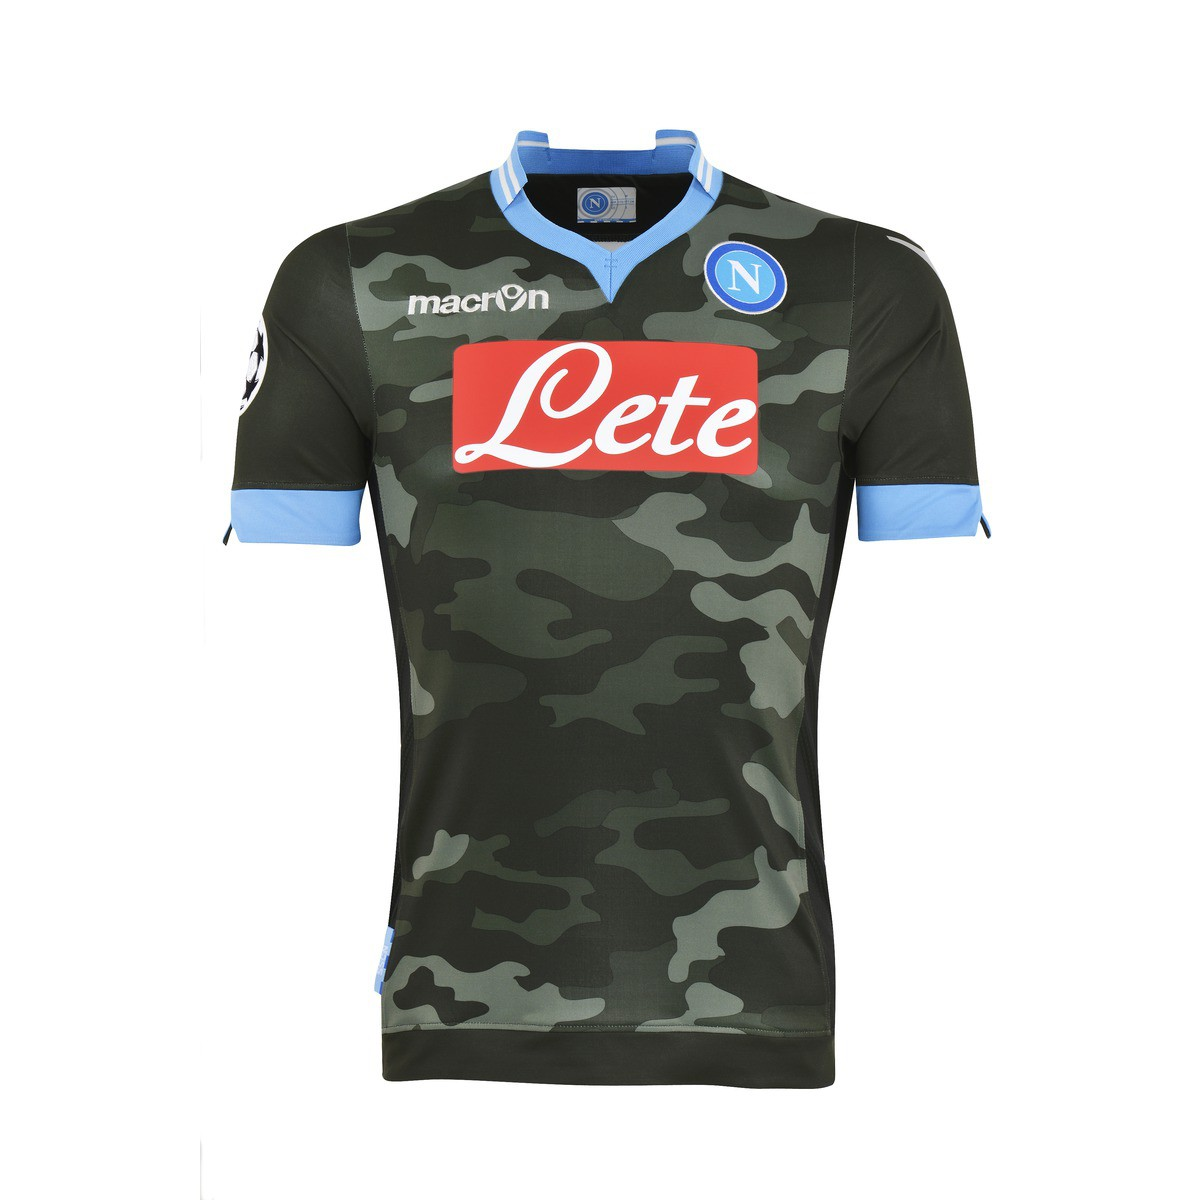 Napoli UCL away jersey 2013/14